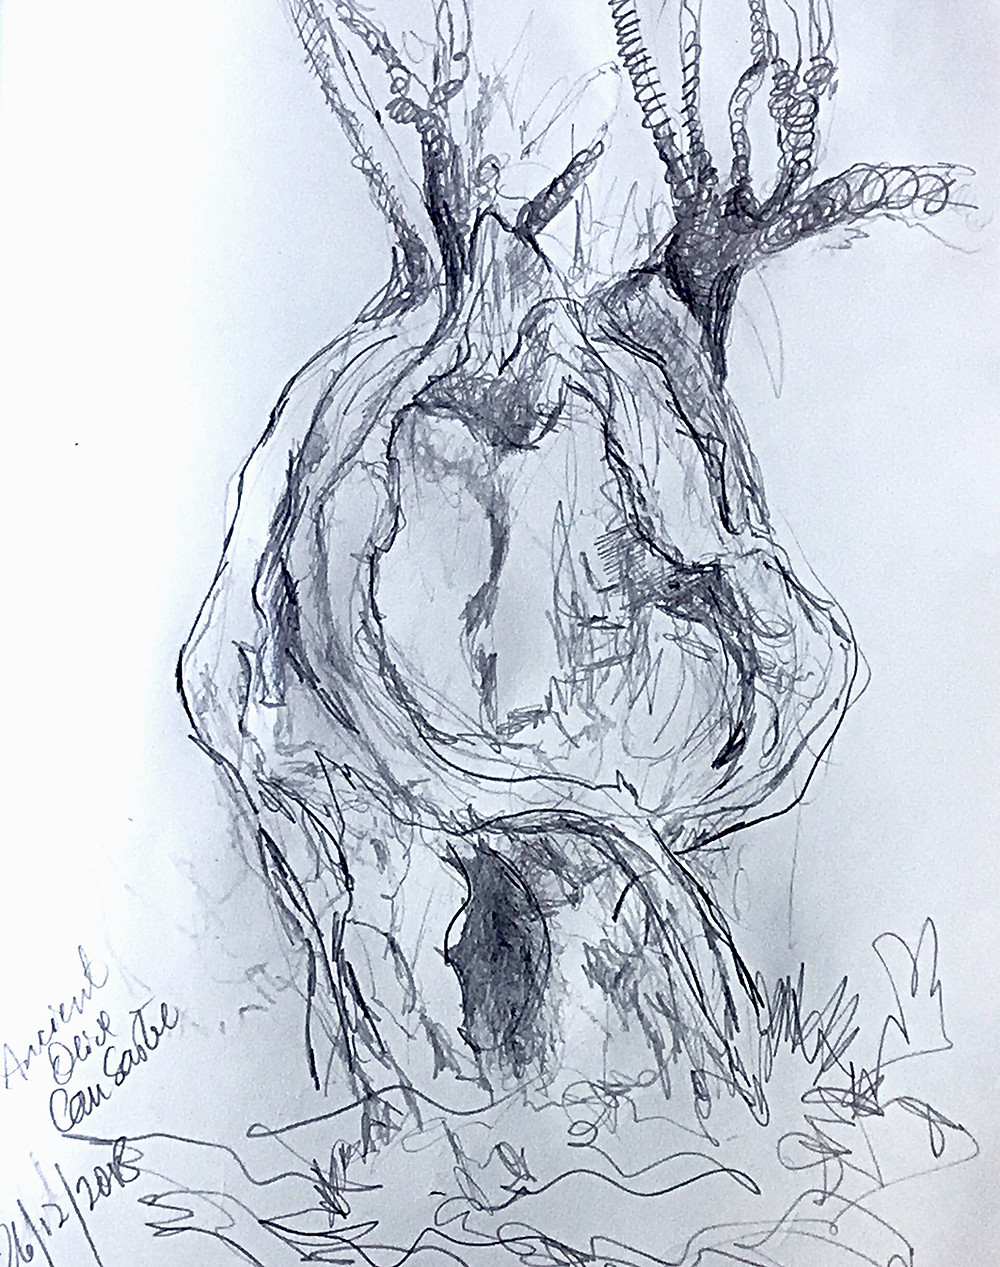 pencil drawing in black and white of ancient hollowed out olive tree with twisting branches.